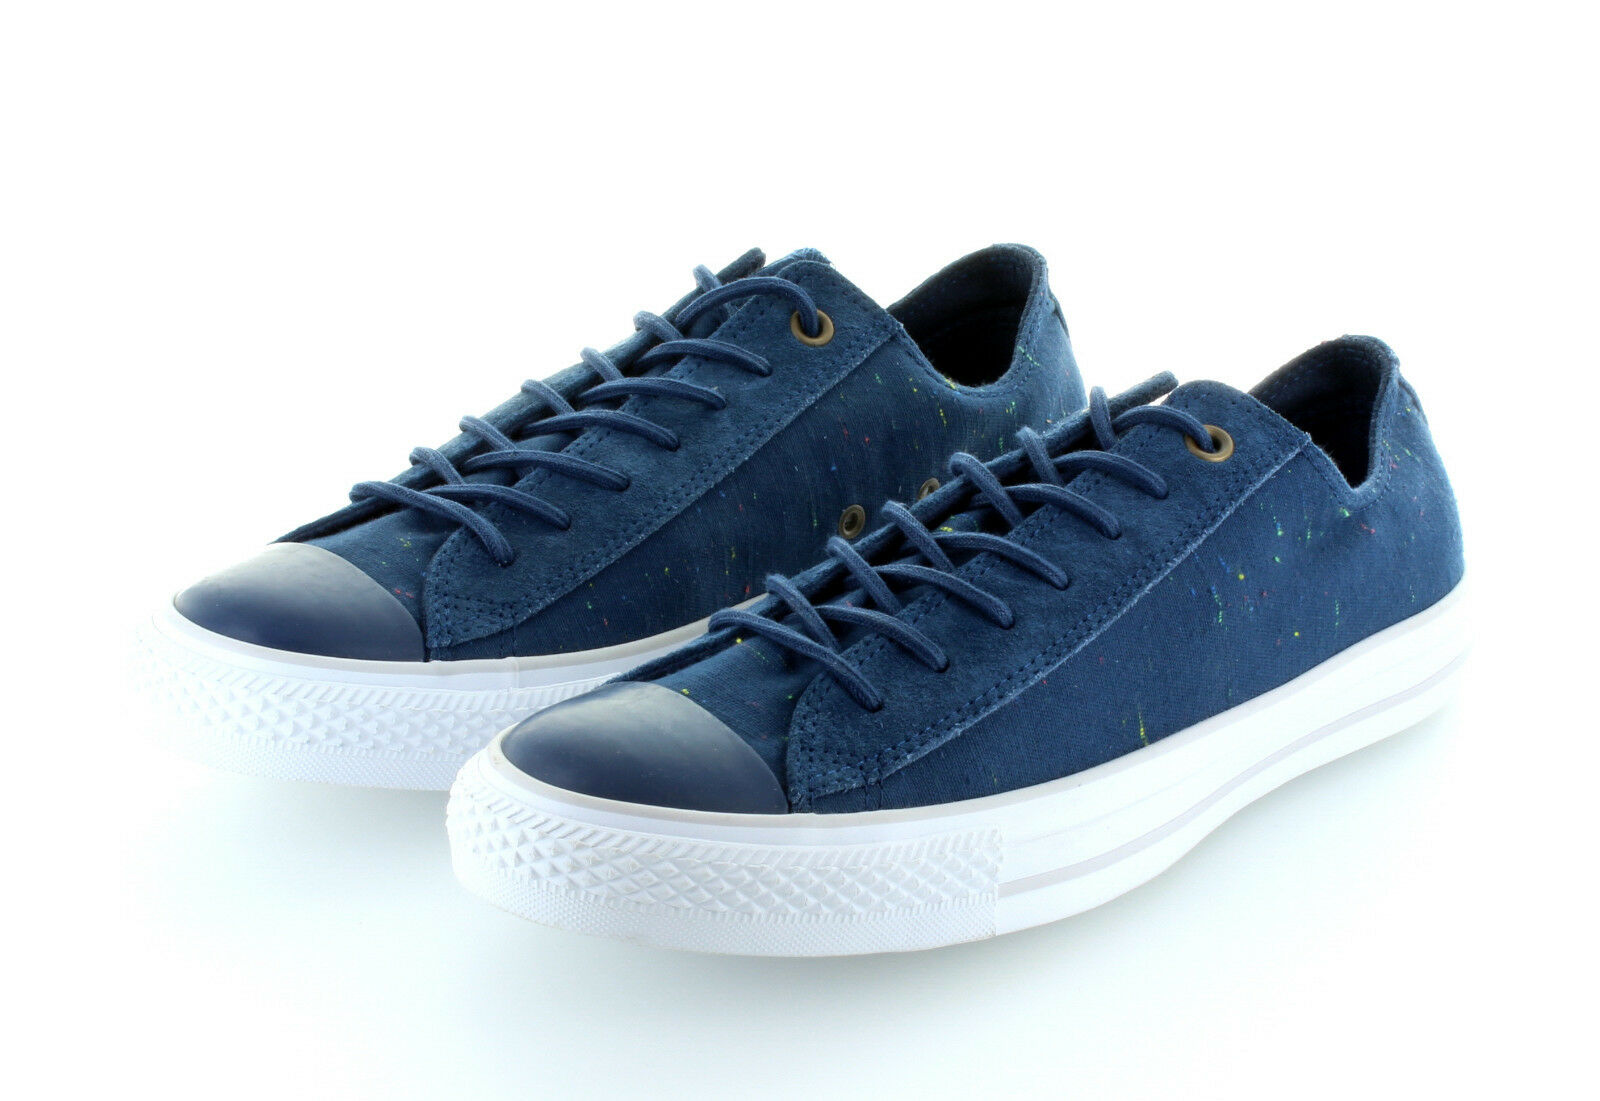 Converse Chuck Taylor AS Ox Textile Eyestay Navy 42,5   43,5 US 9